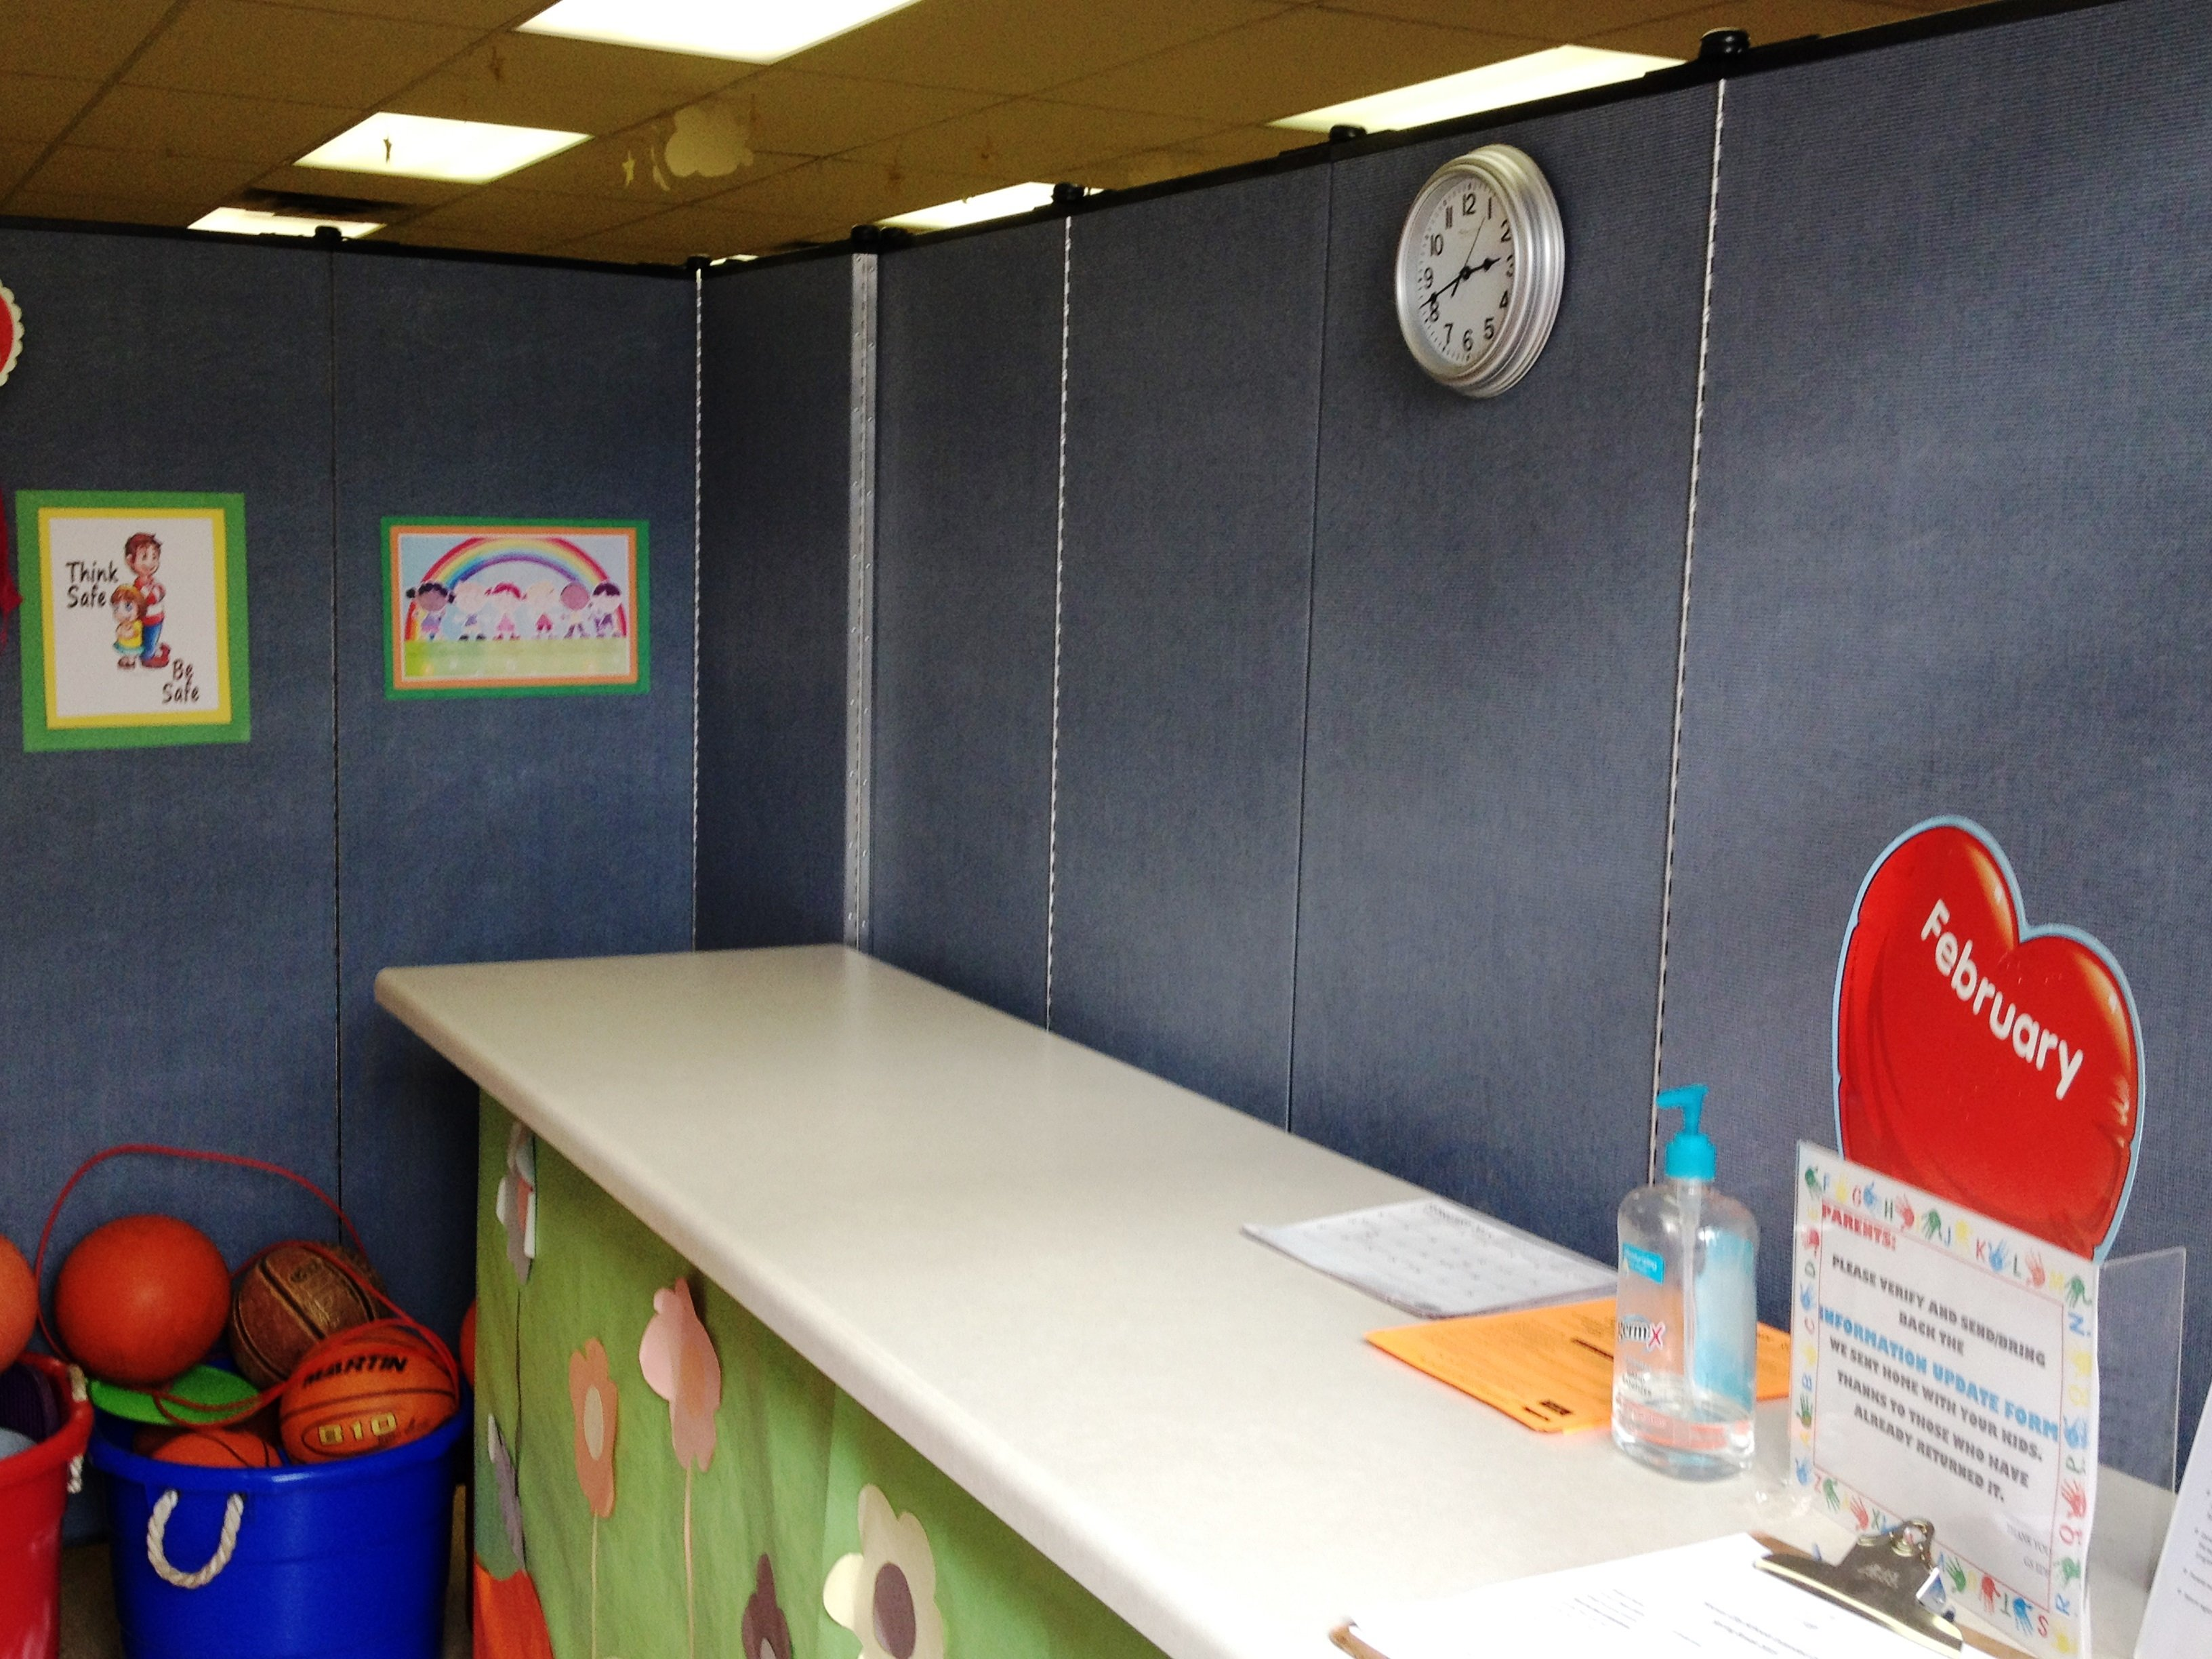 Interior of student sign out area